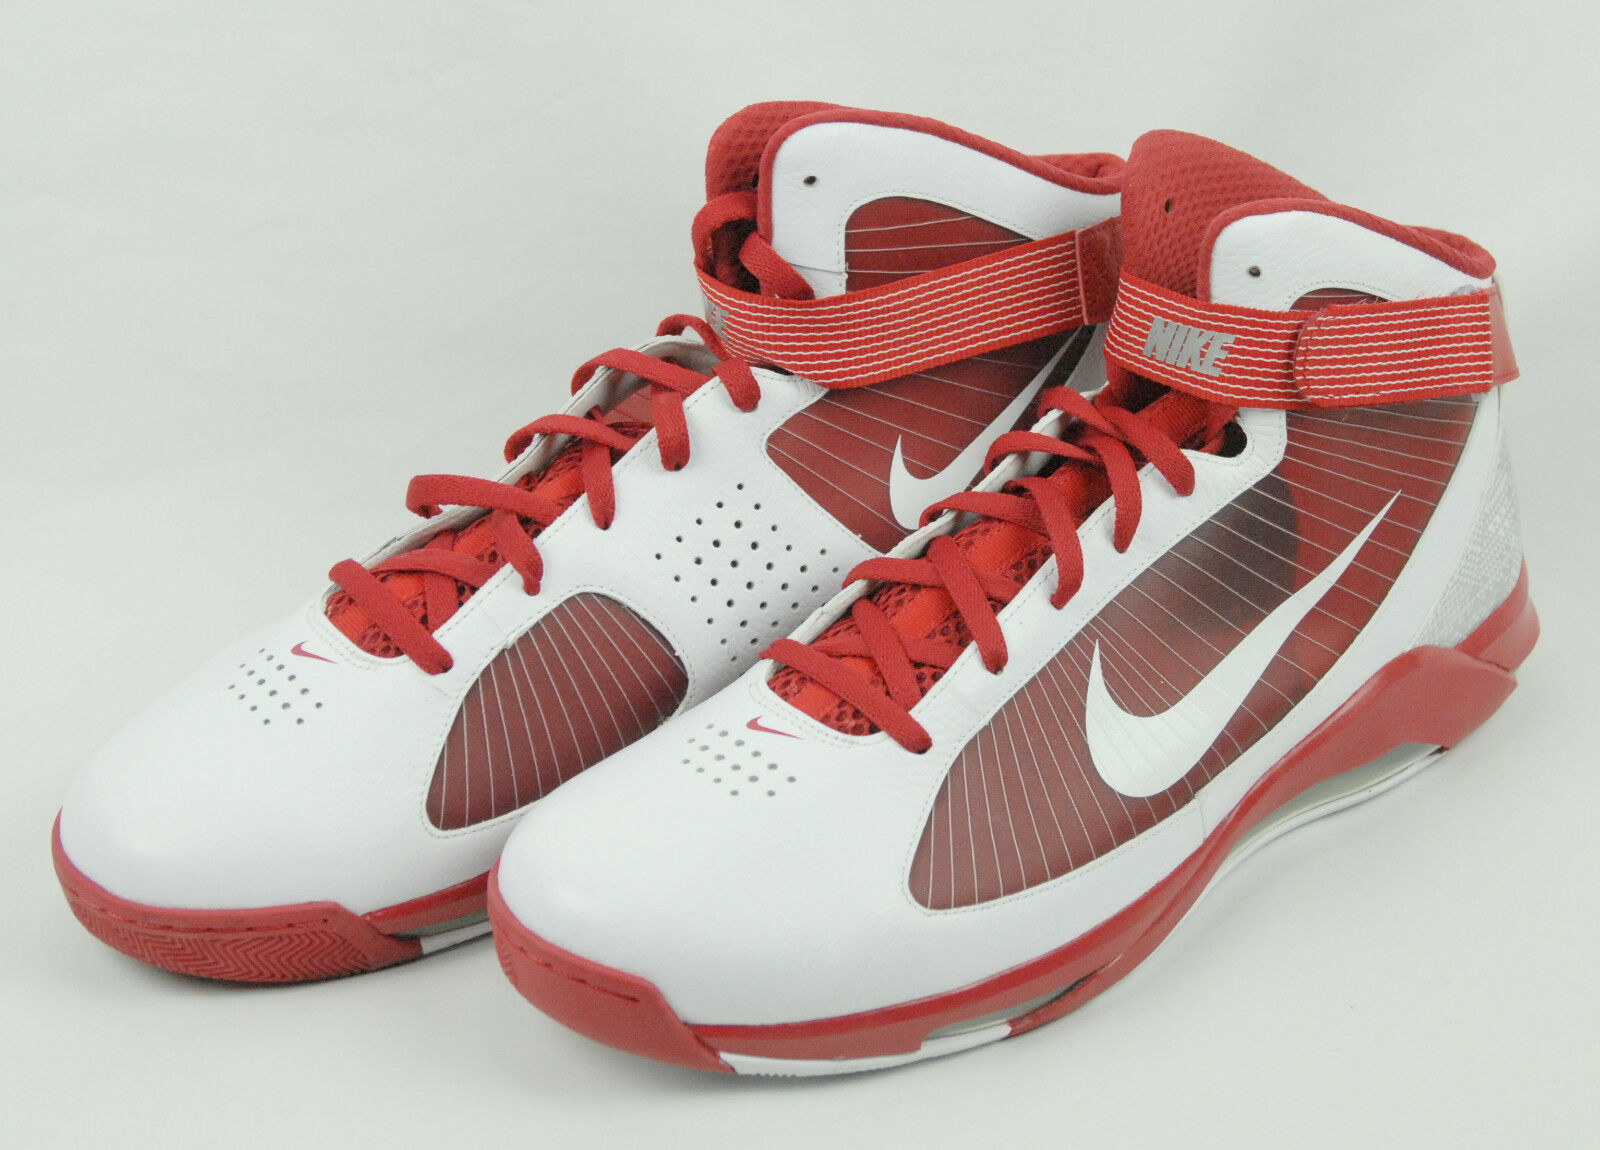 Nike Air Max basketball shoes men's red & white hightops size US 17.5